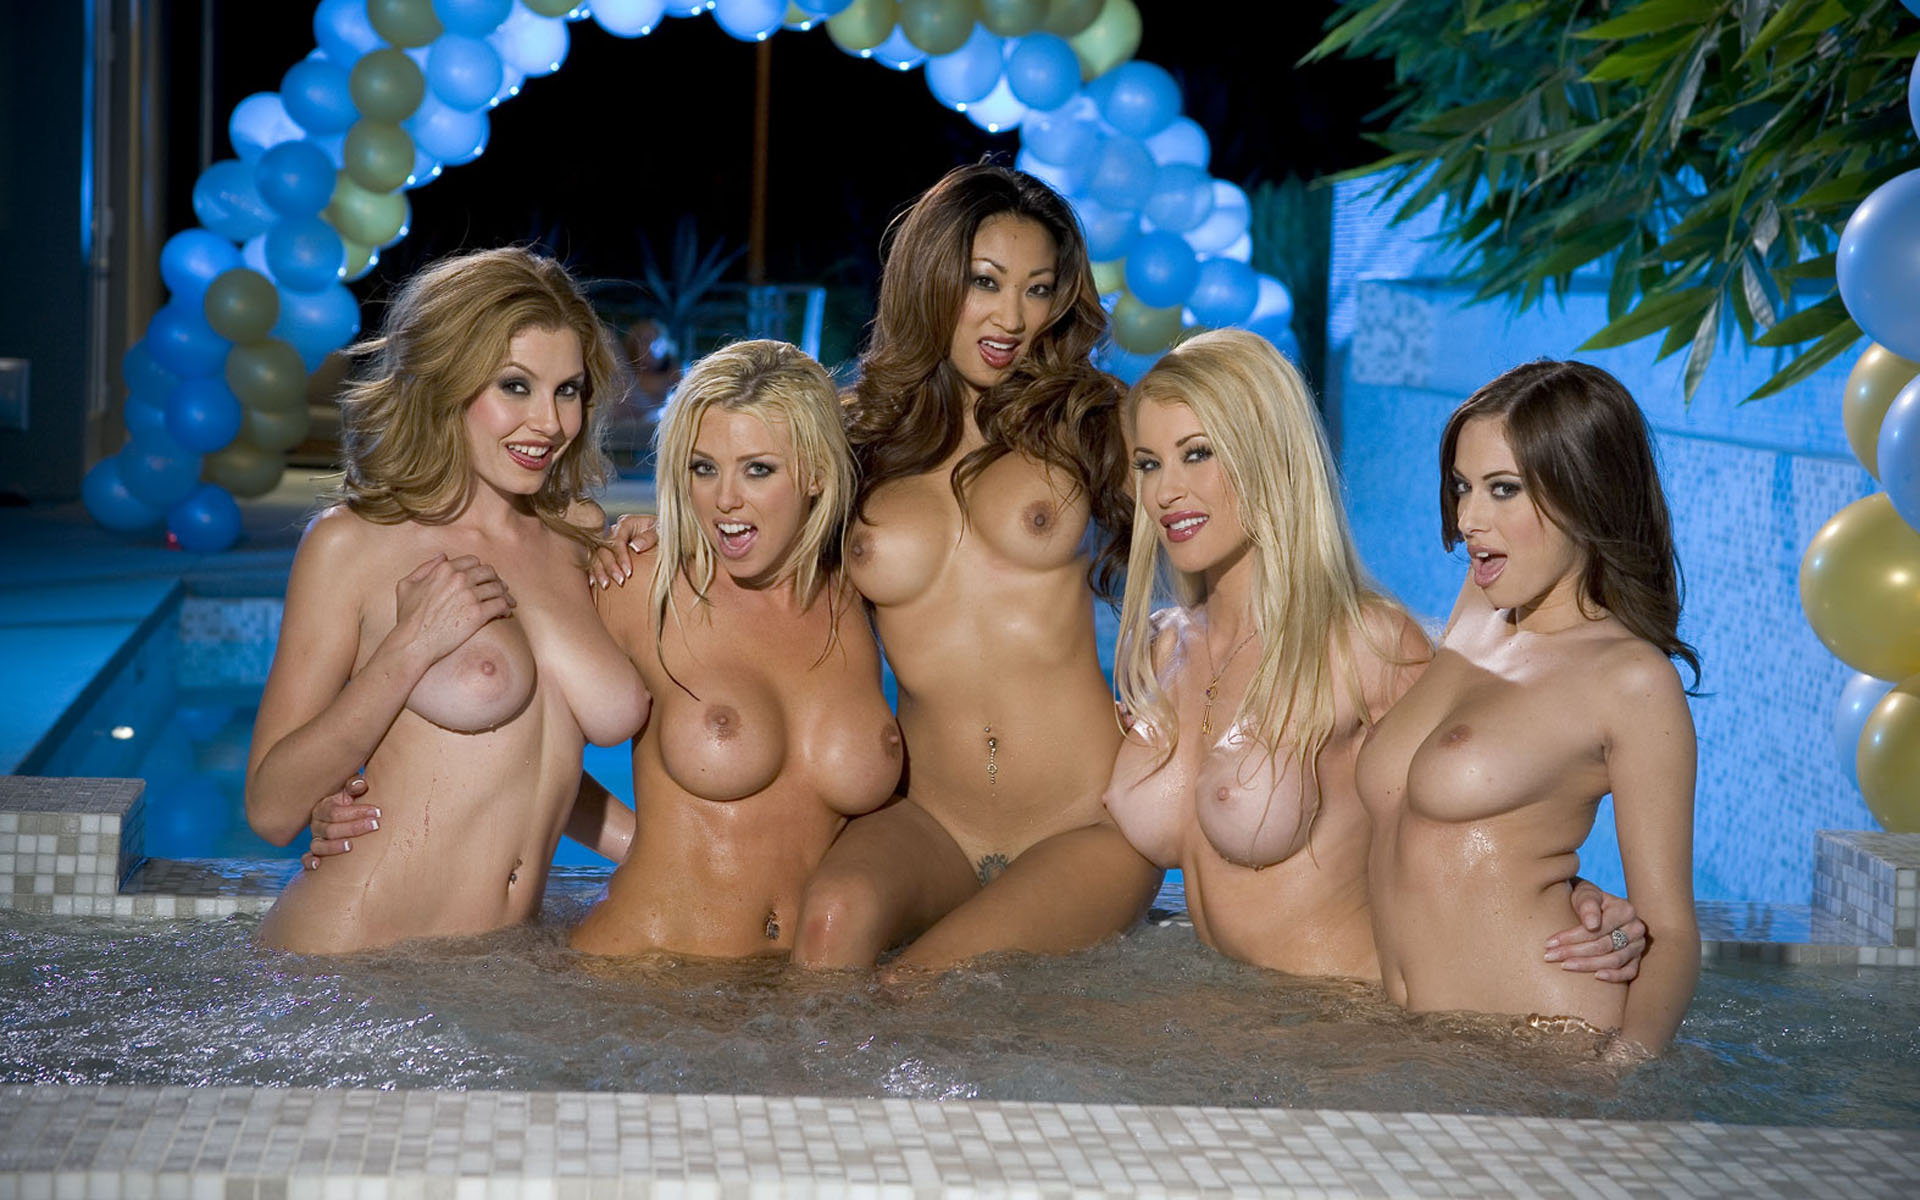 Wallpaper Five Girls, Naked, Hot, Bath, Water, Brittney -1689